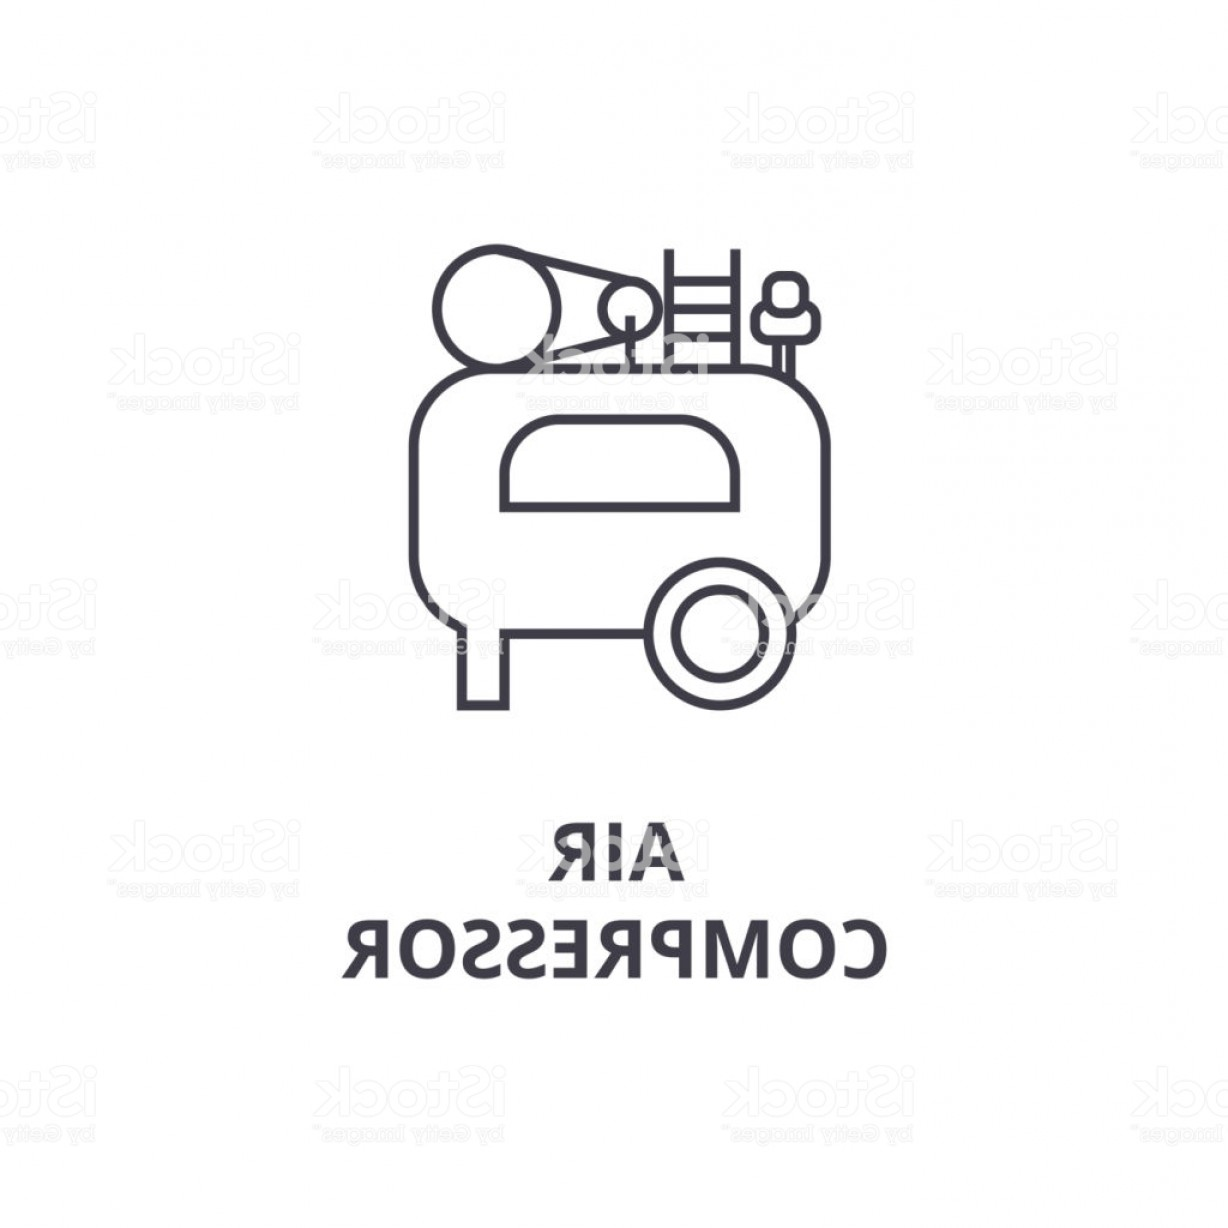 Vector Power On Board Compressor: Air Compressor Vector Line Icon Sign Illustration On Background Editable Strokes Gm